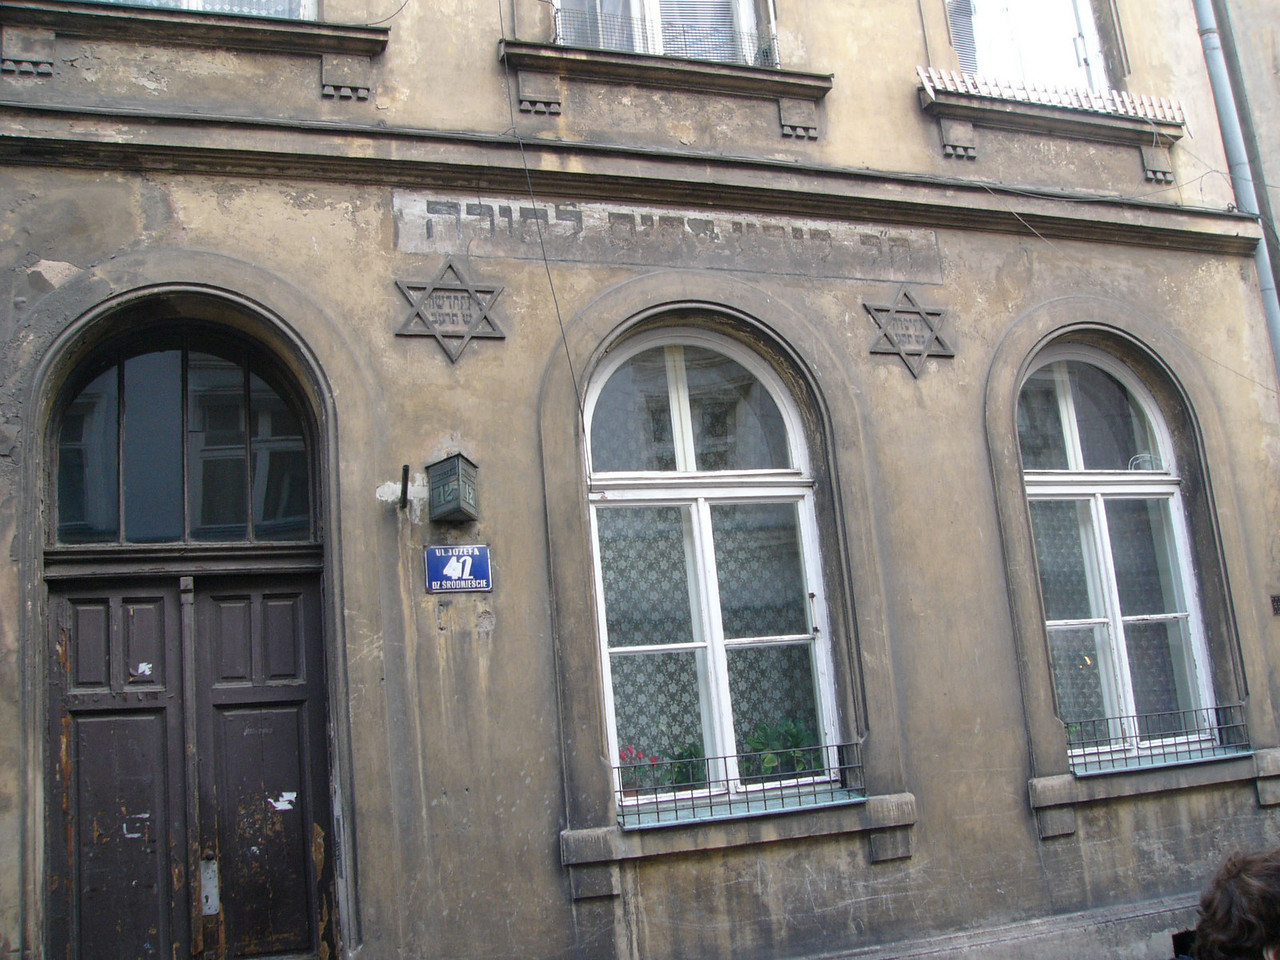 No longer in Jewish hands, this apartment building on Josefa street retains its decorations